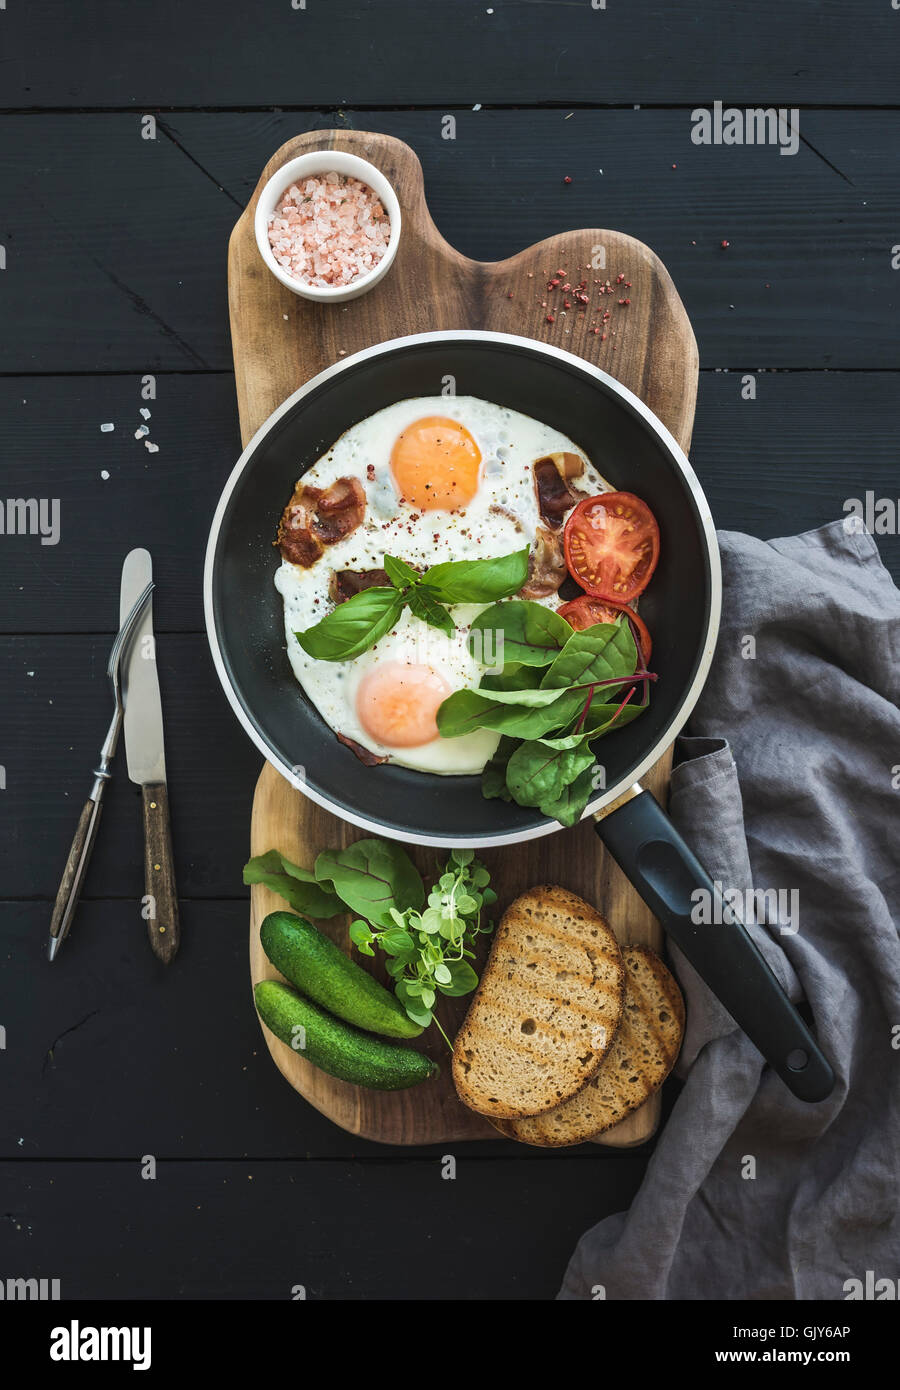 Pan of fried eggs, bacon, cherry tomatoes and fresh herbs with bread on wooden board over dark wooden background, - Stock Image